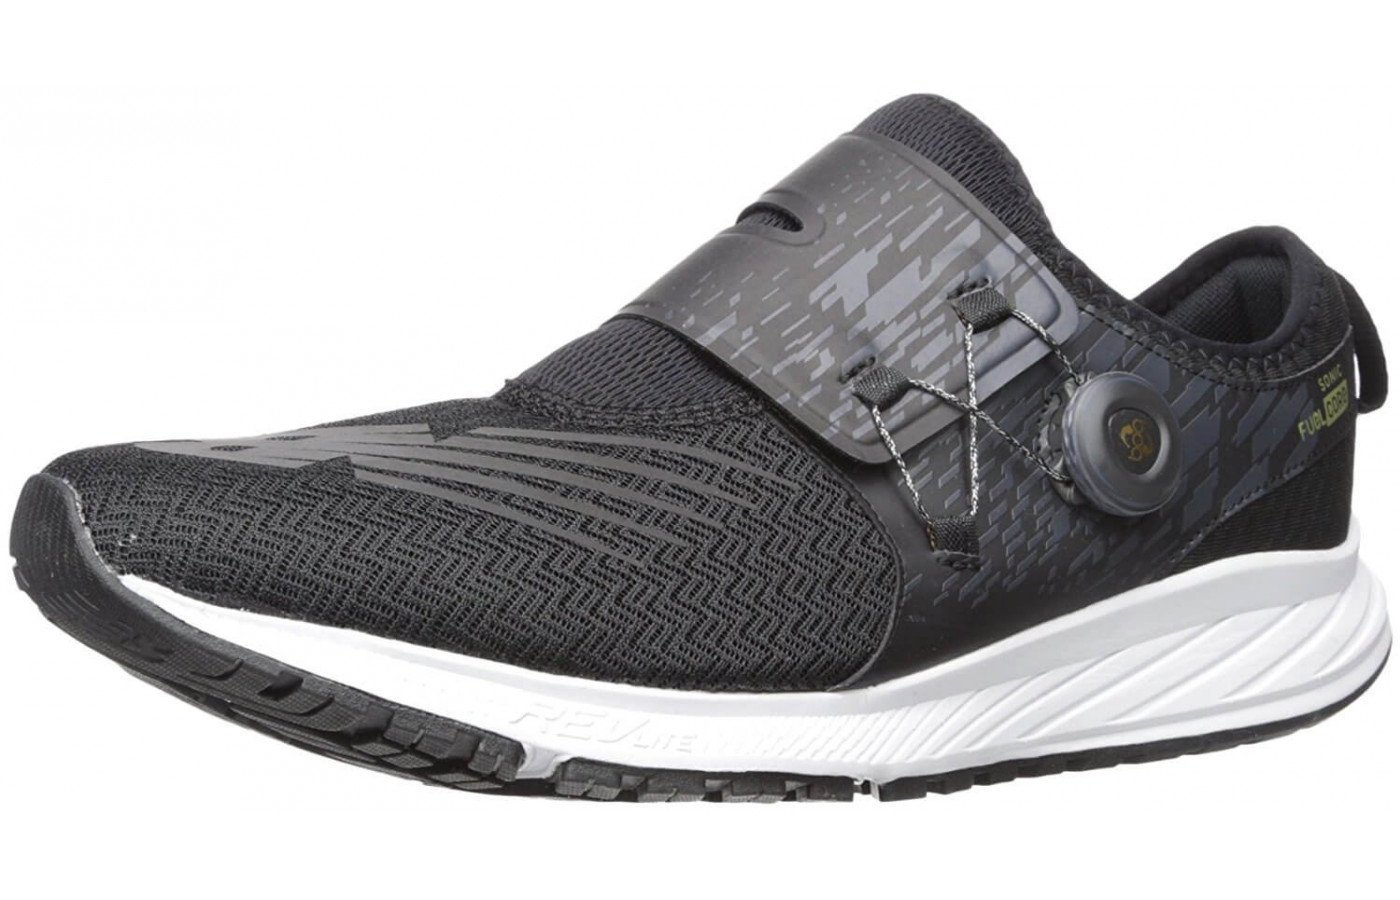 185eb22493aea New Balance FuelCore Sonic Fullyed - in July 2019?